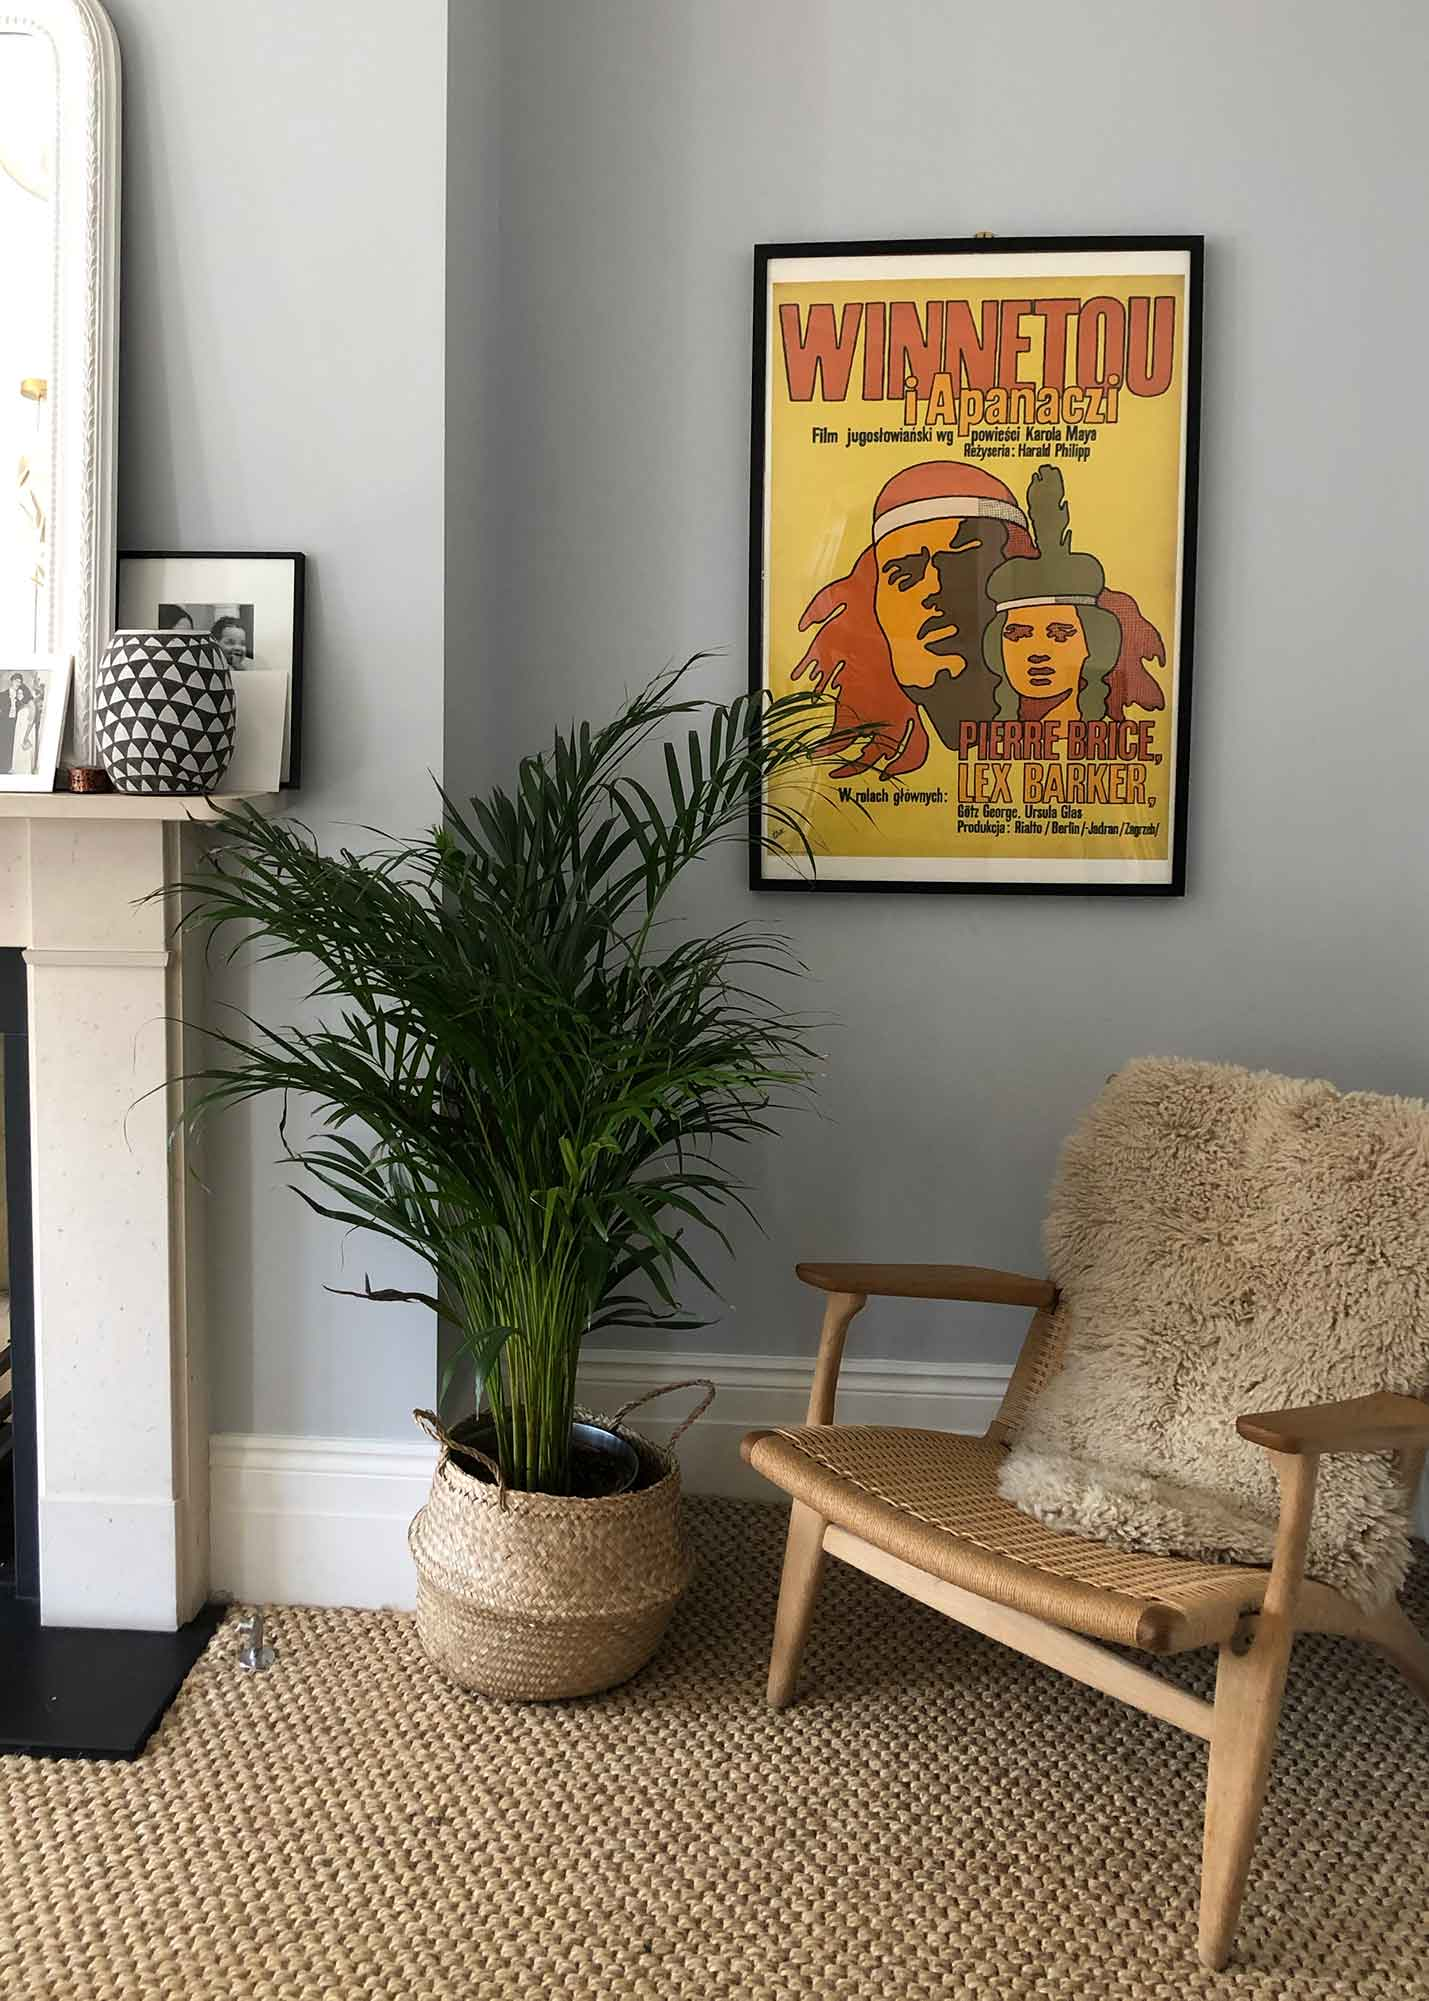 Winnetou heads to a tranquil bedroom in Hackney